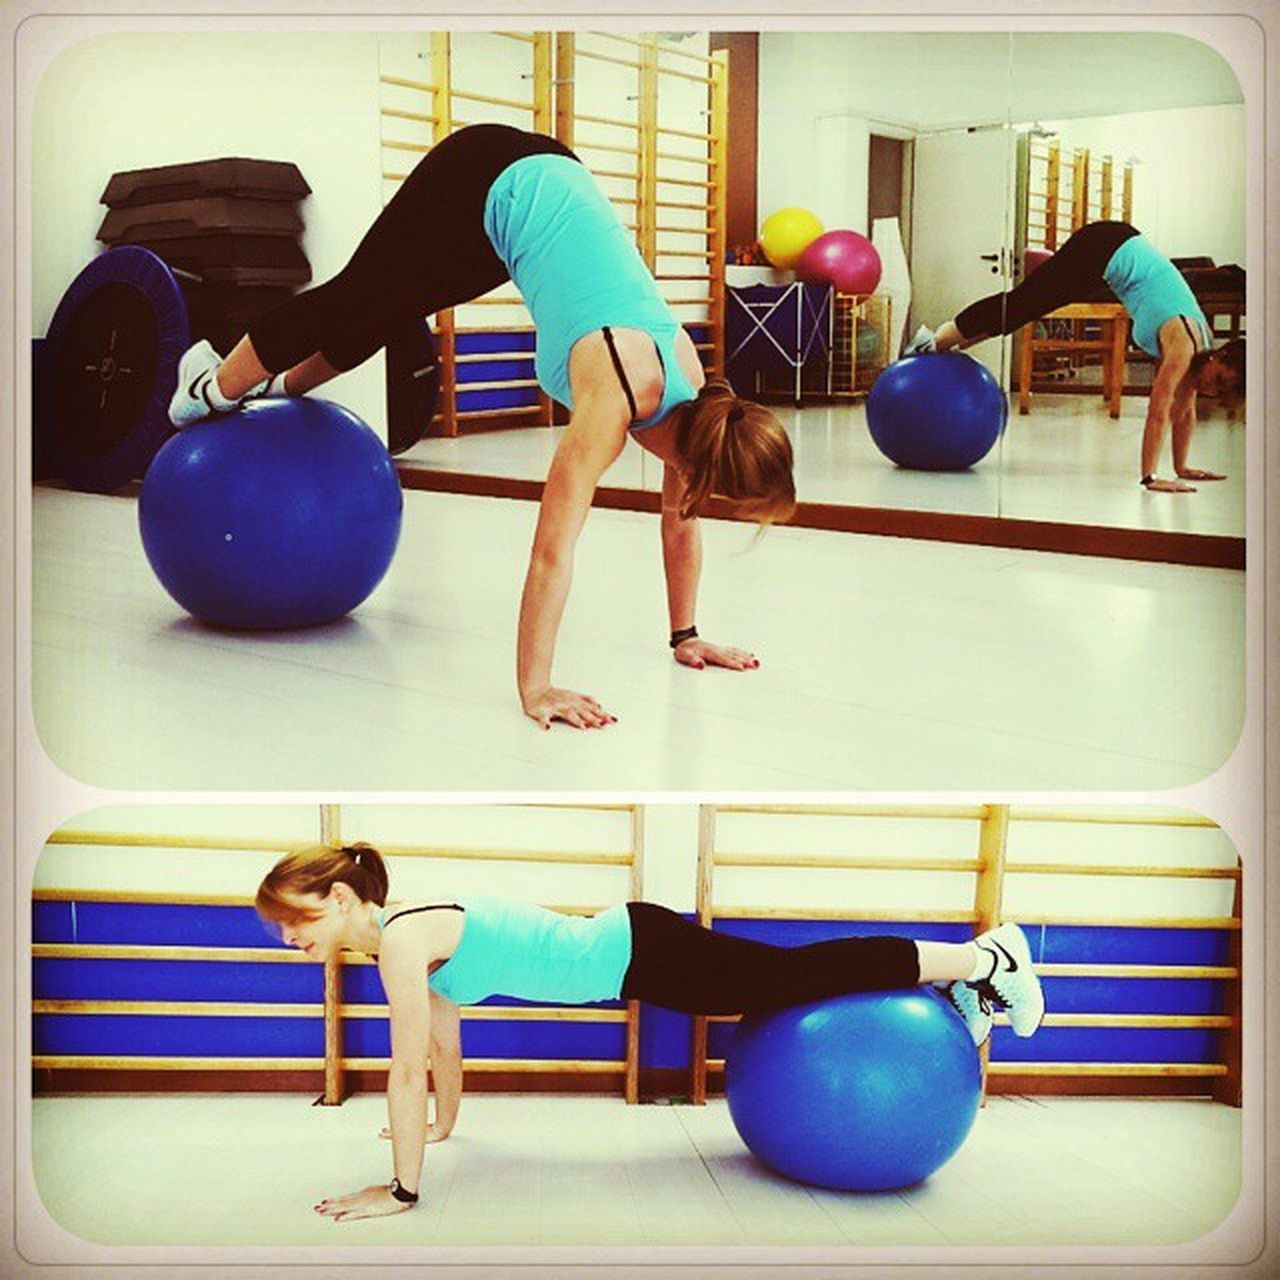 Chinesio Fitness Fitball Befit Gym Picoftheday Instafit Instafitness Instagramers Jacknife Befitness Blonde Instablonde